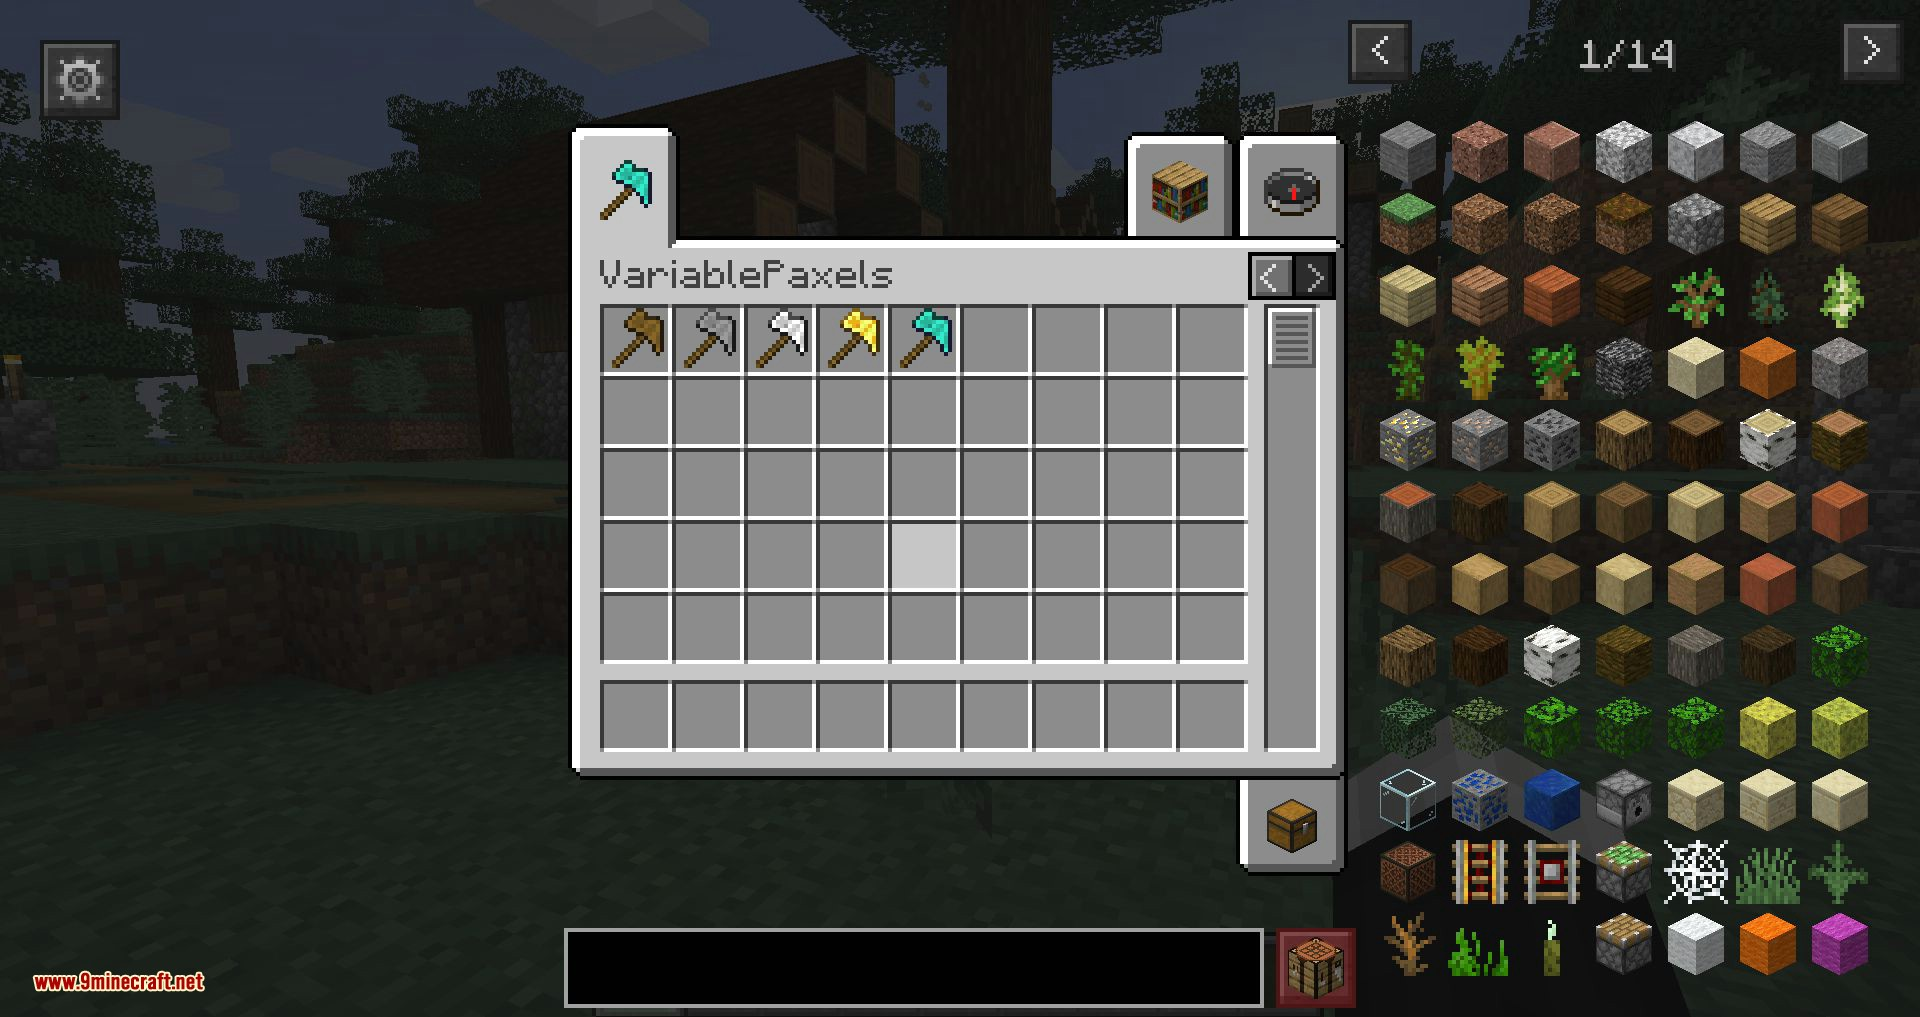 Variable Paxels mod for minecraft 01